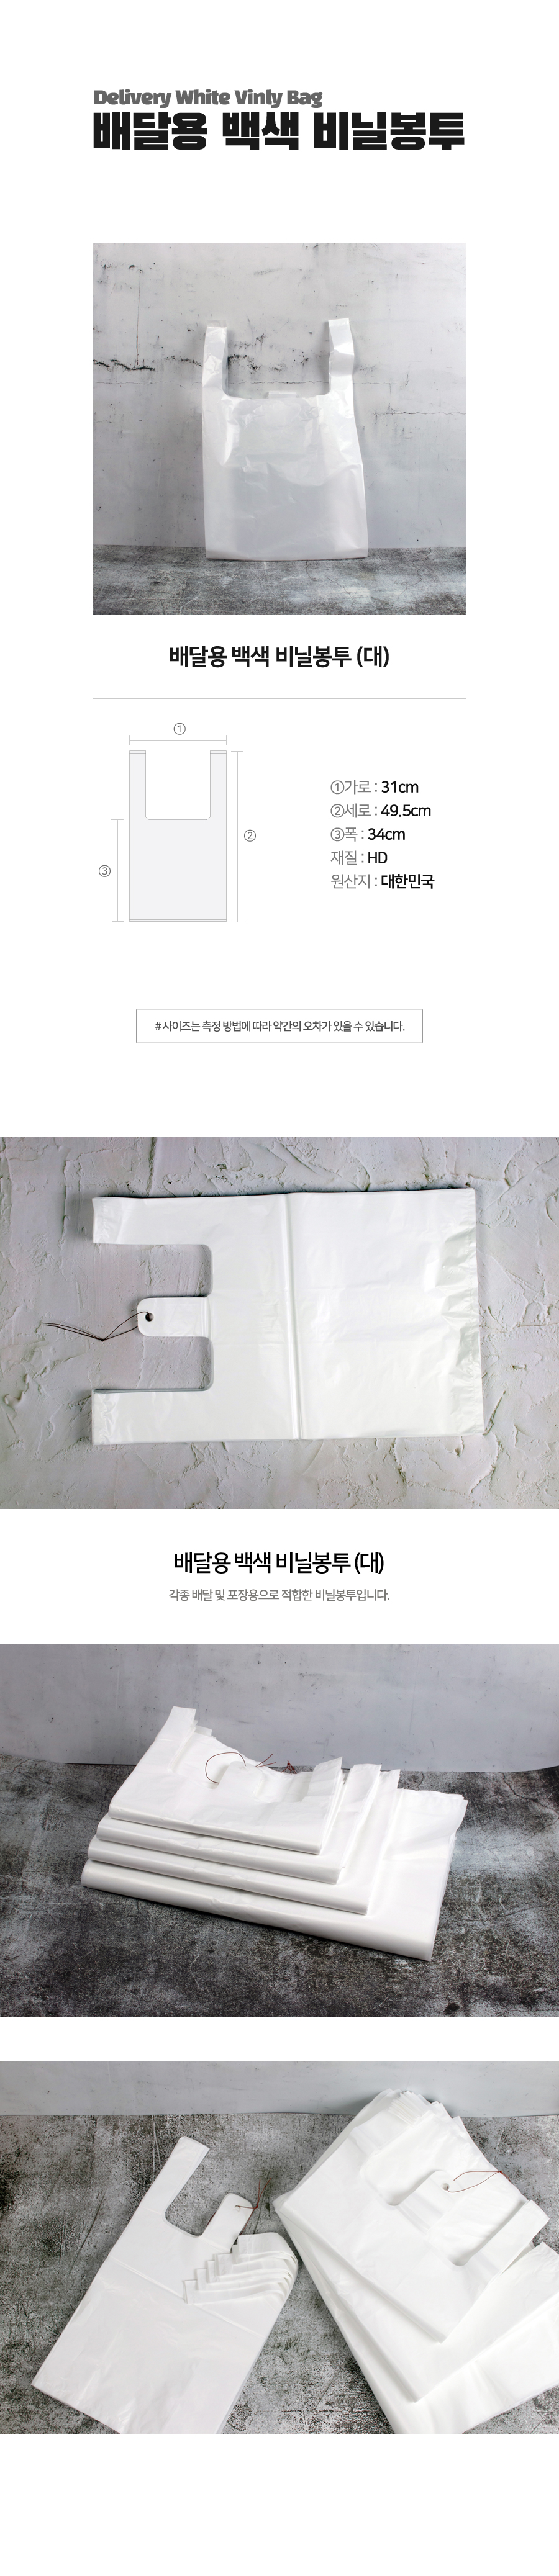 Delivery_White_Vinly_Bag_L